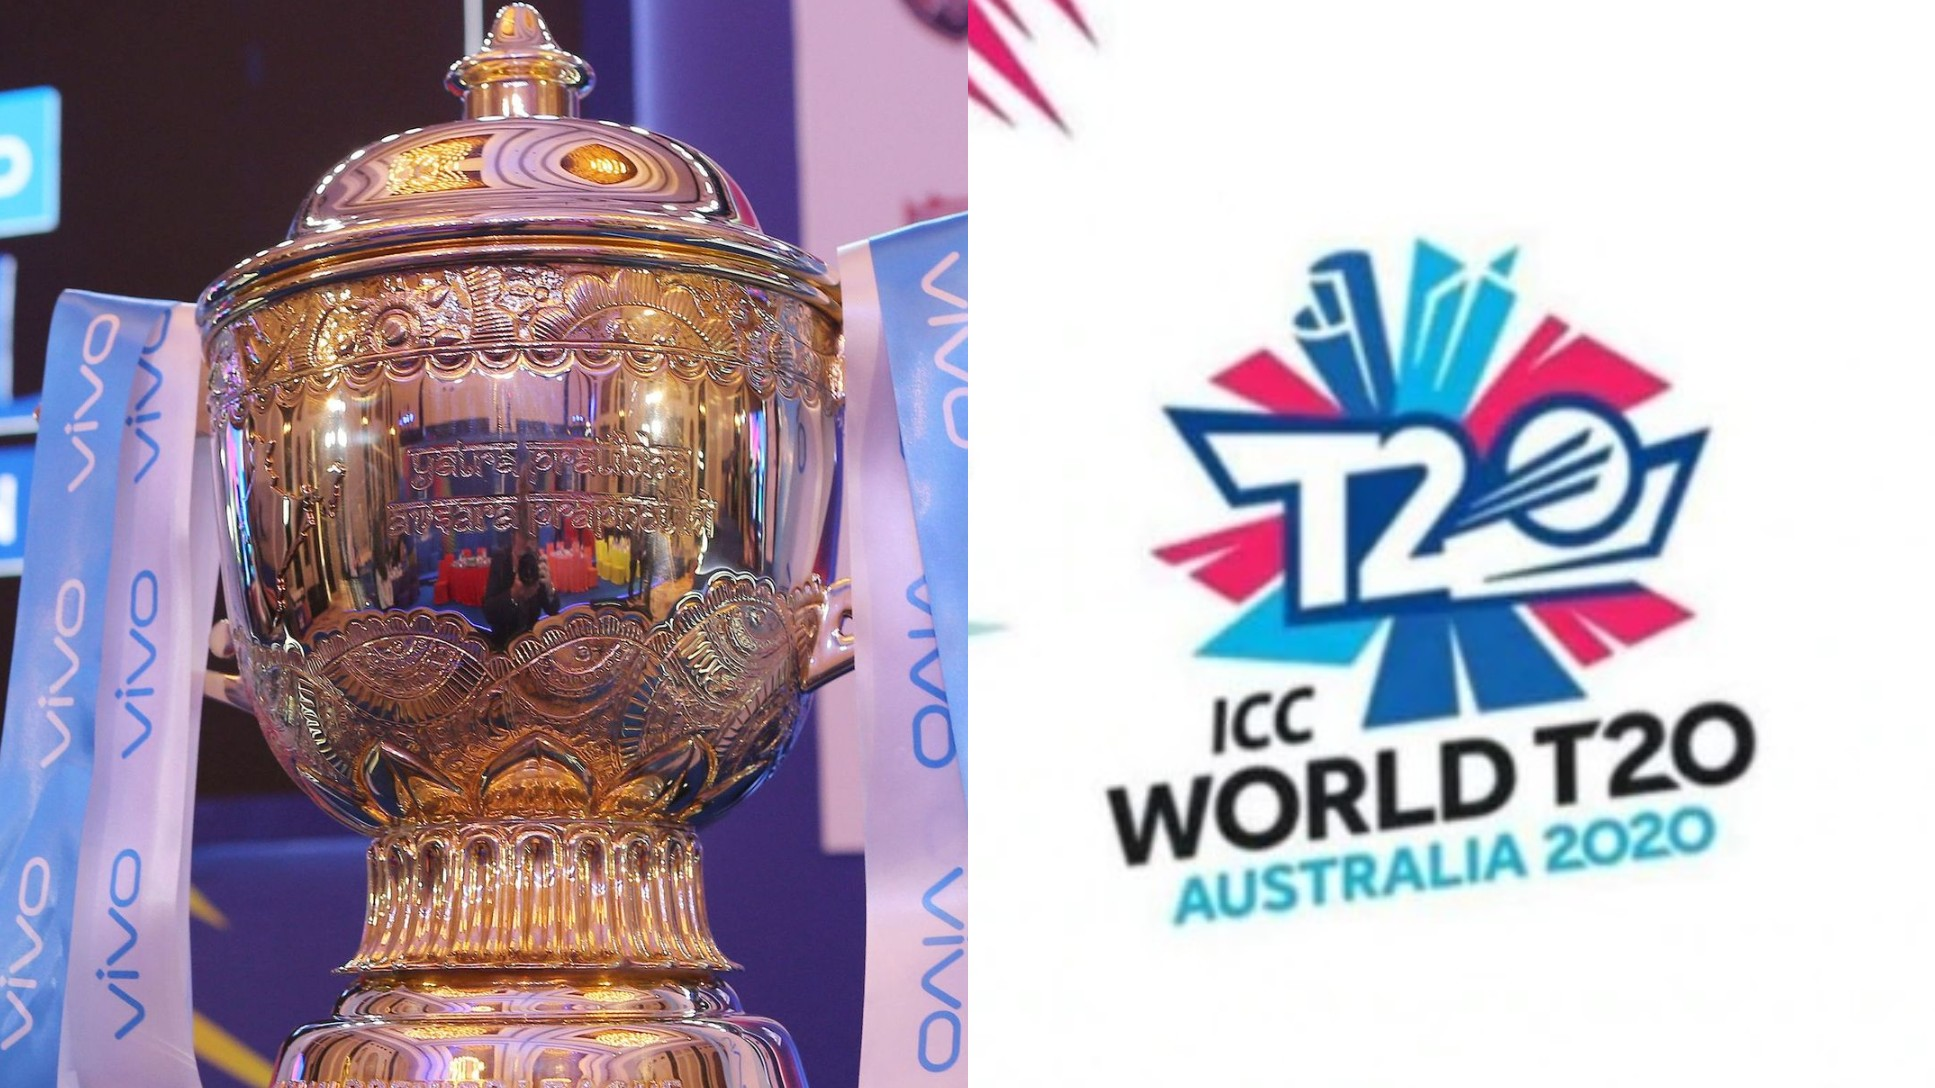 IPL 2020: BCCI may hold IPL in Oct-Nov if T20 World Cup gets postponed, as per sources